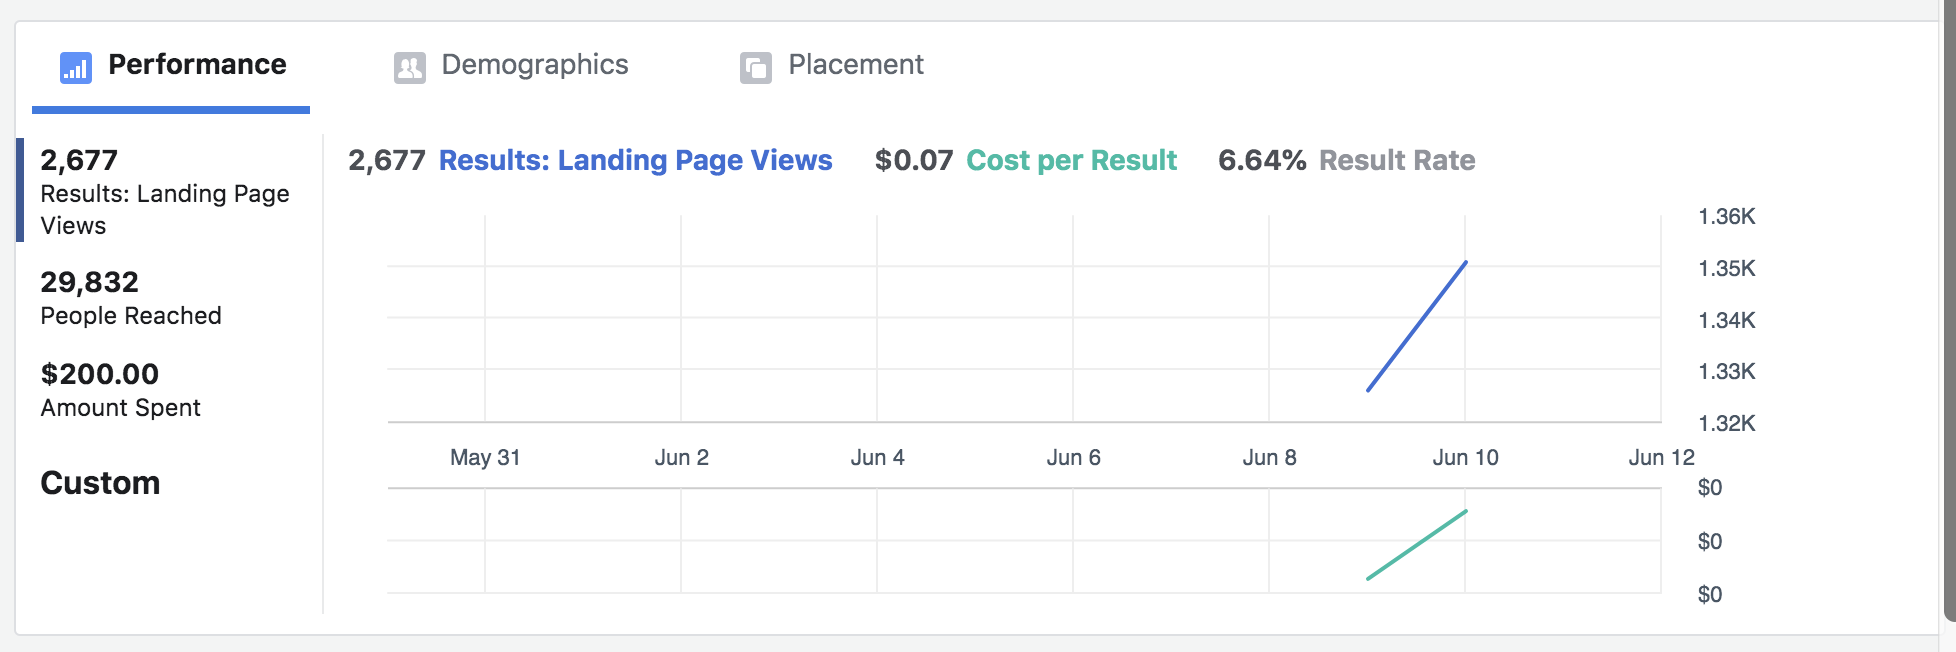 Facebook ad analytics can be difficult to understand if you don't have prior knowledge